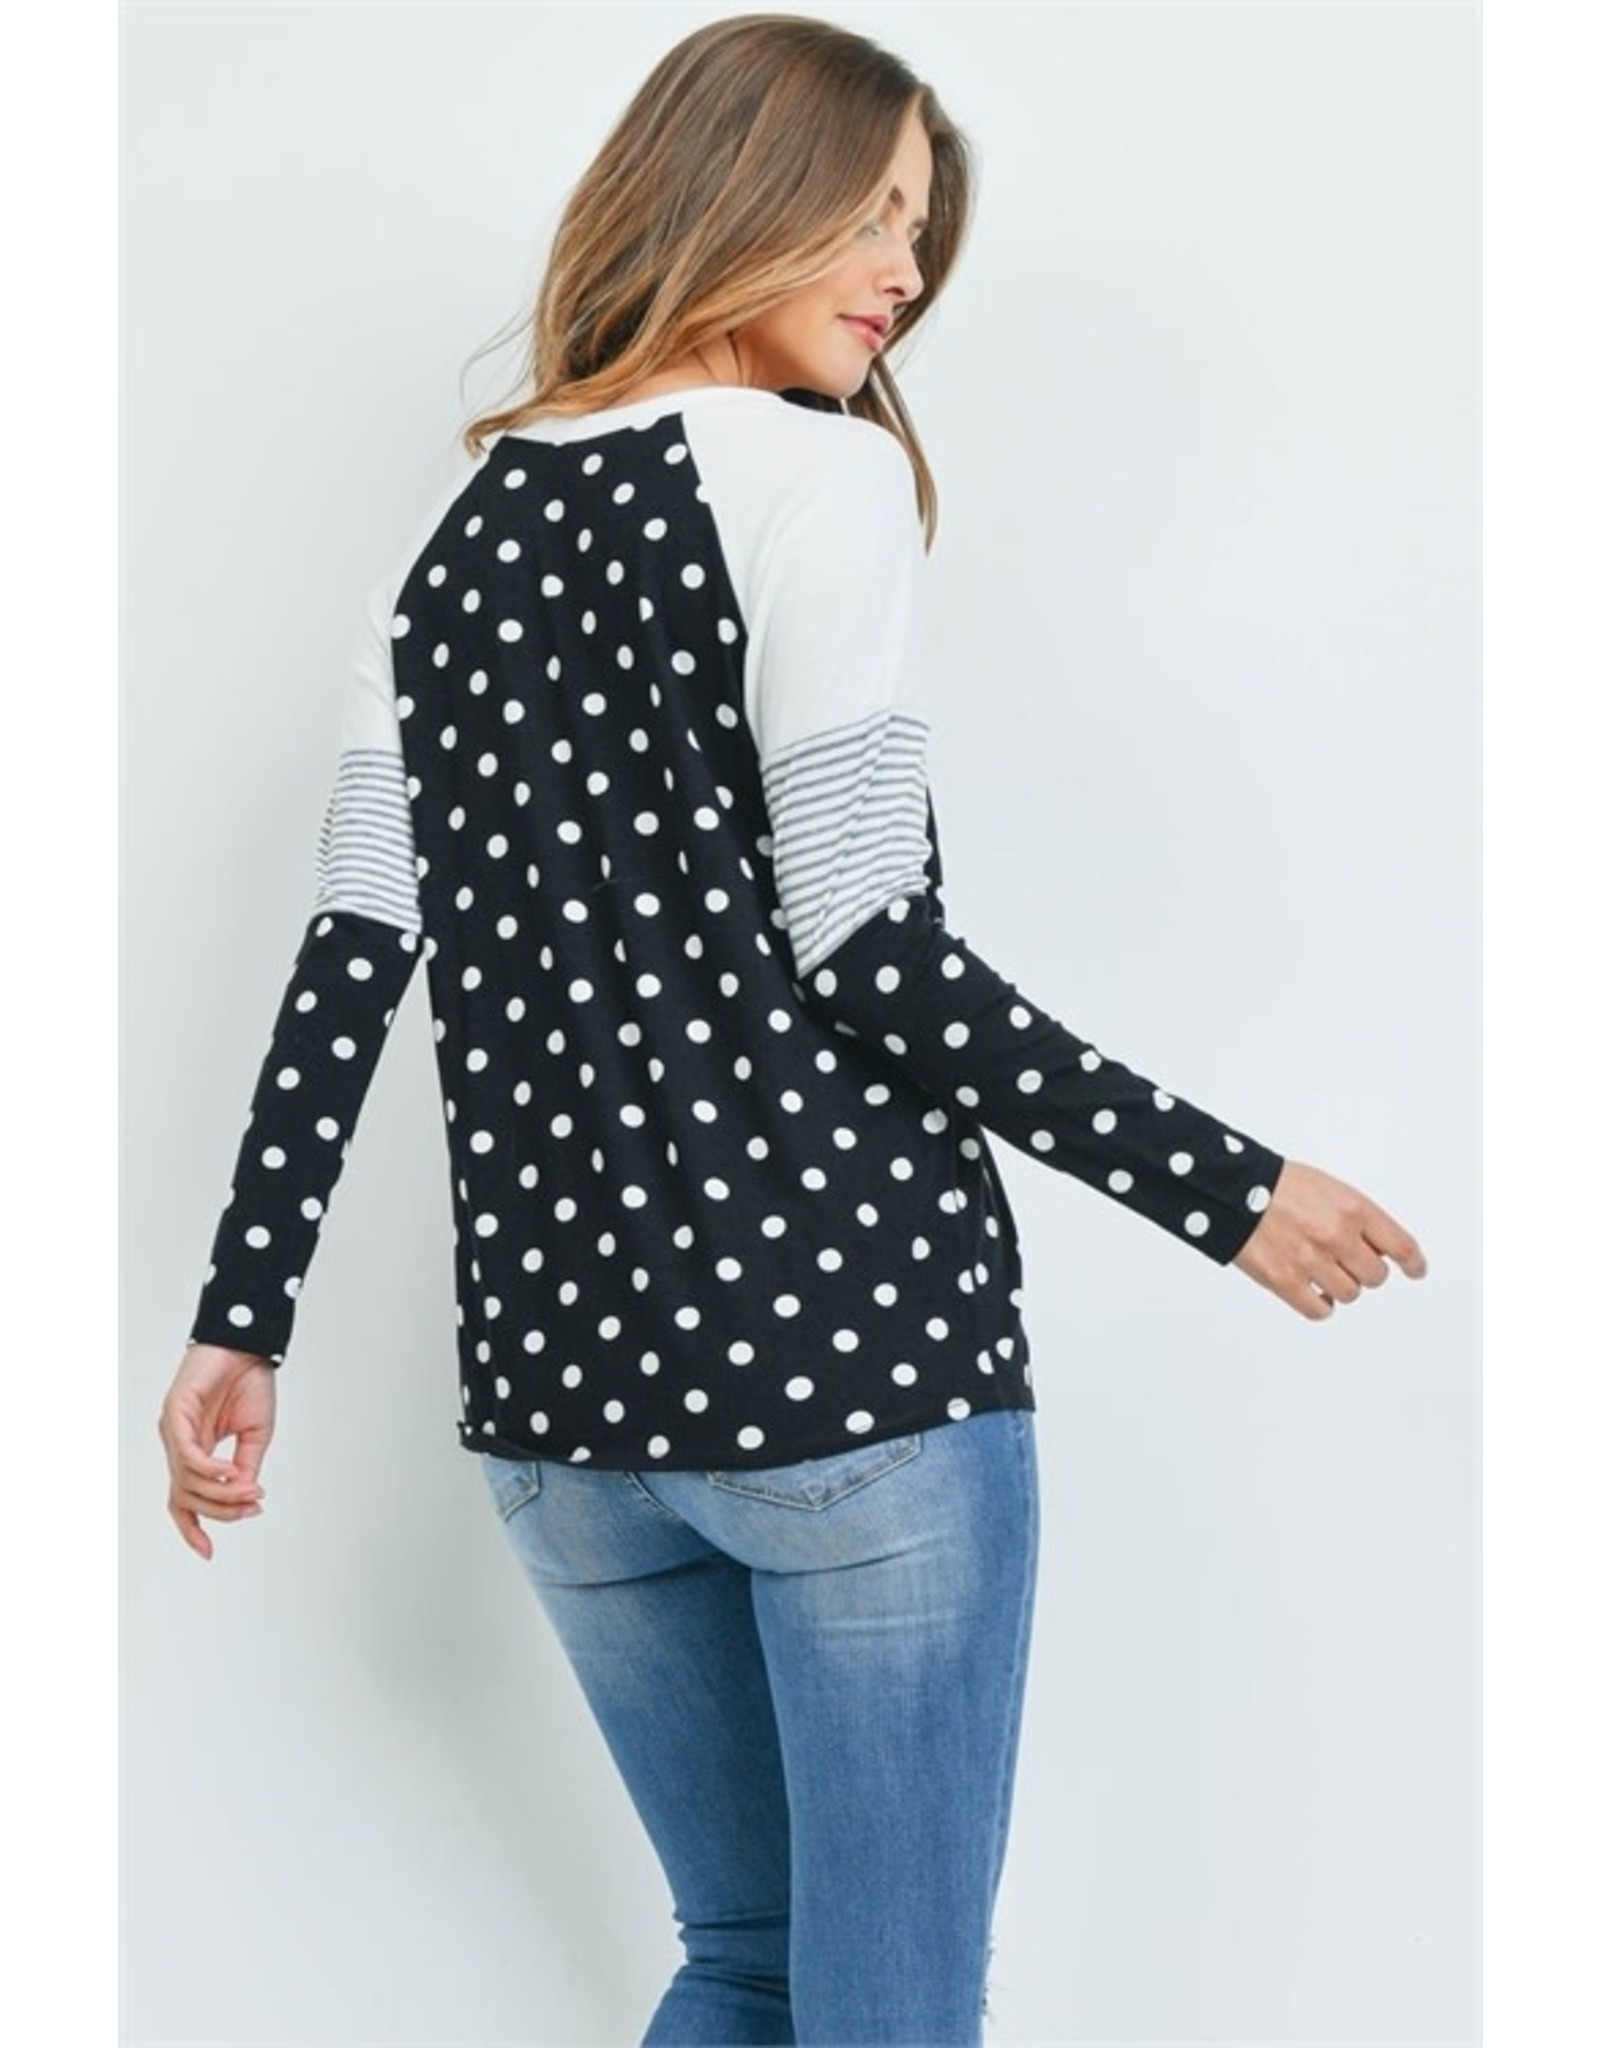 Mixed Print Black and Ivory Long Sleeve Top